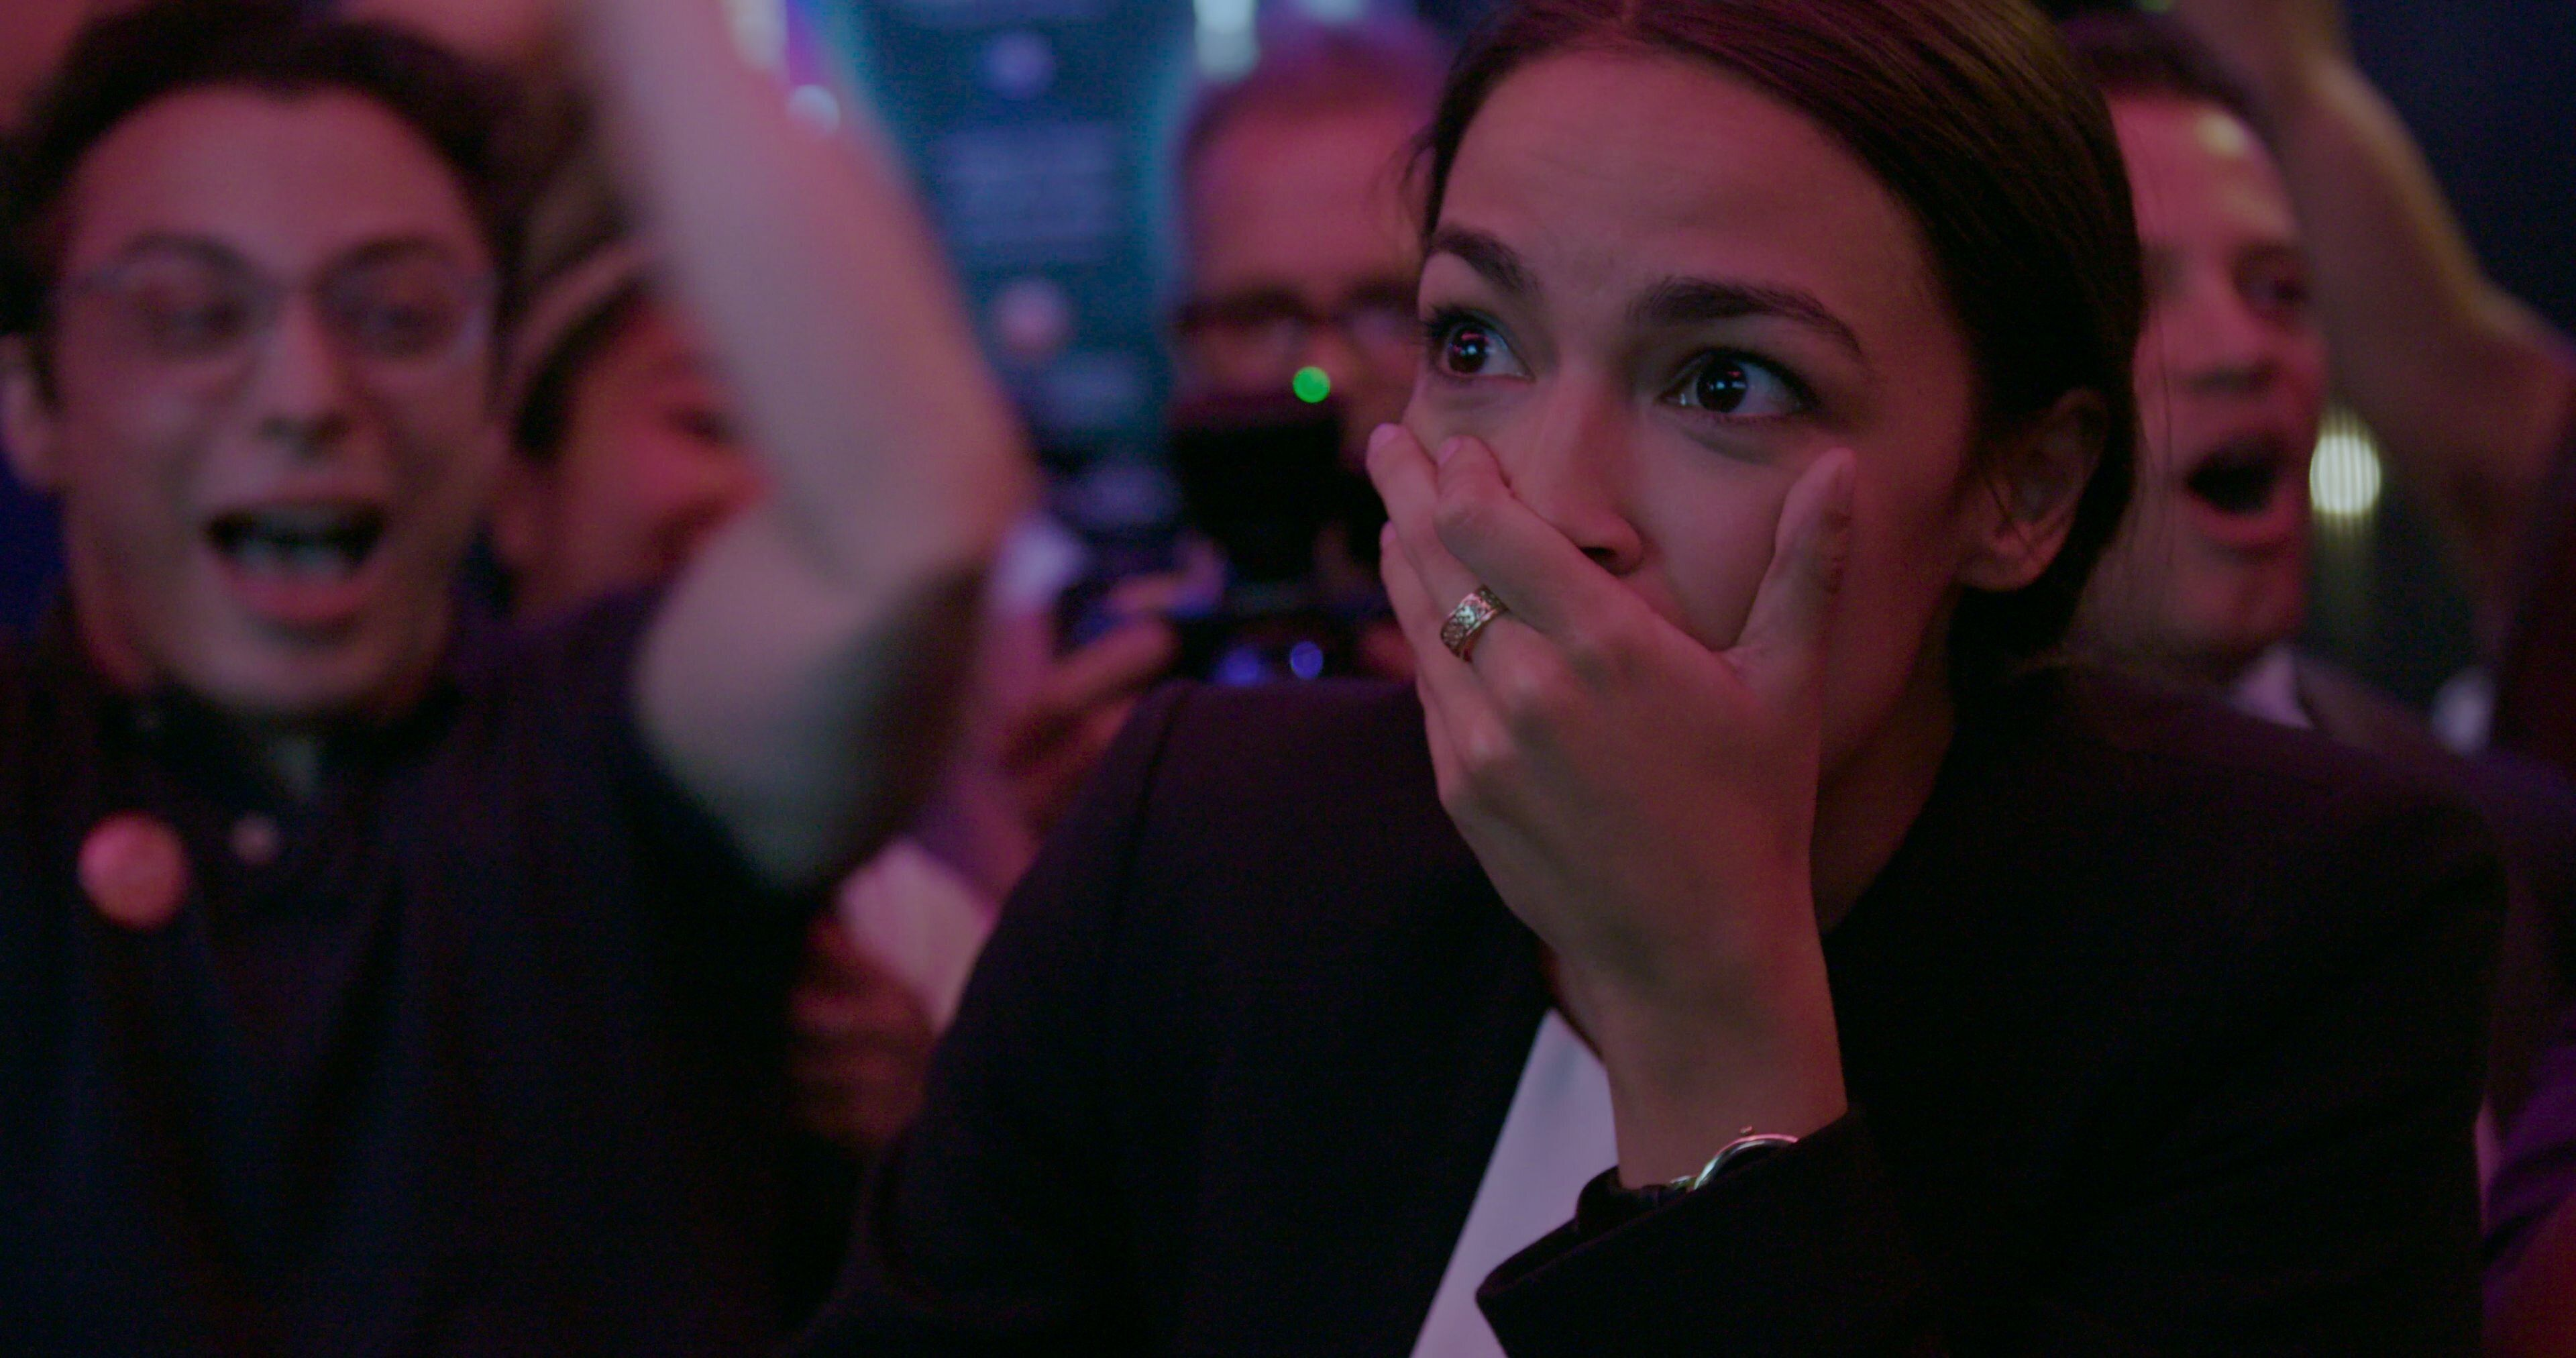 """Alexandria Ocasio-Cortez looks on in shock as she wins the 2018 primary election in a still from Netflix's """"Knock Down the Ho"""